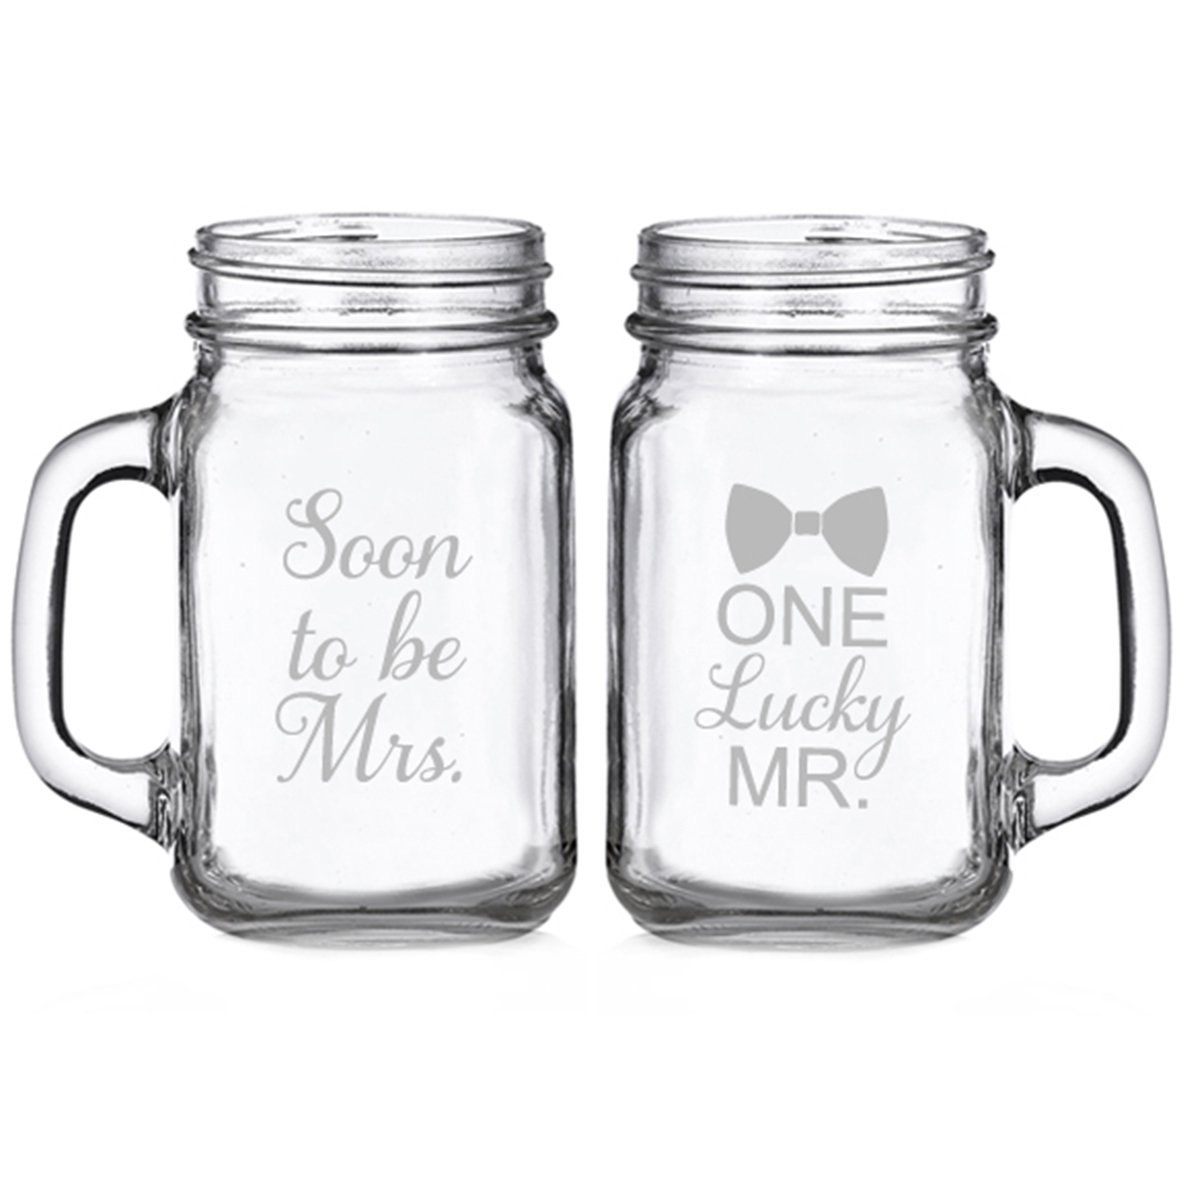 Soon To Be Mrs. And One Lucky Mister Engraved Glass Mason Mugs (set of 2)